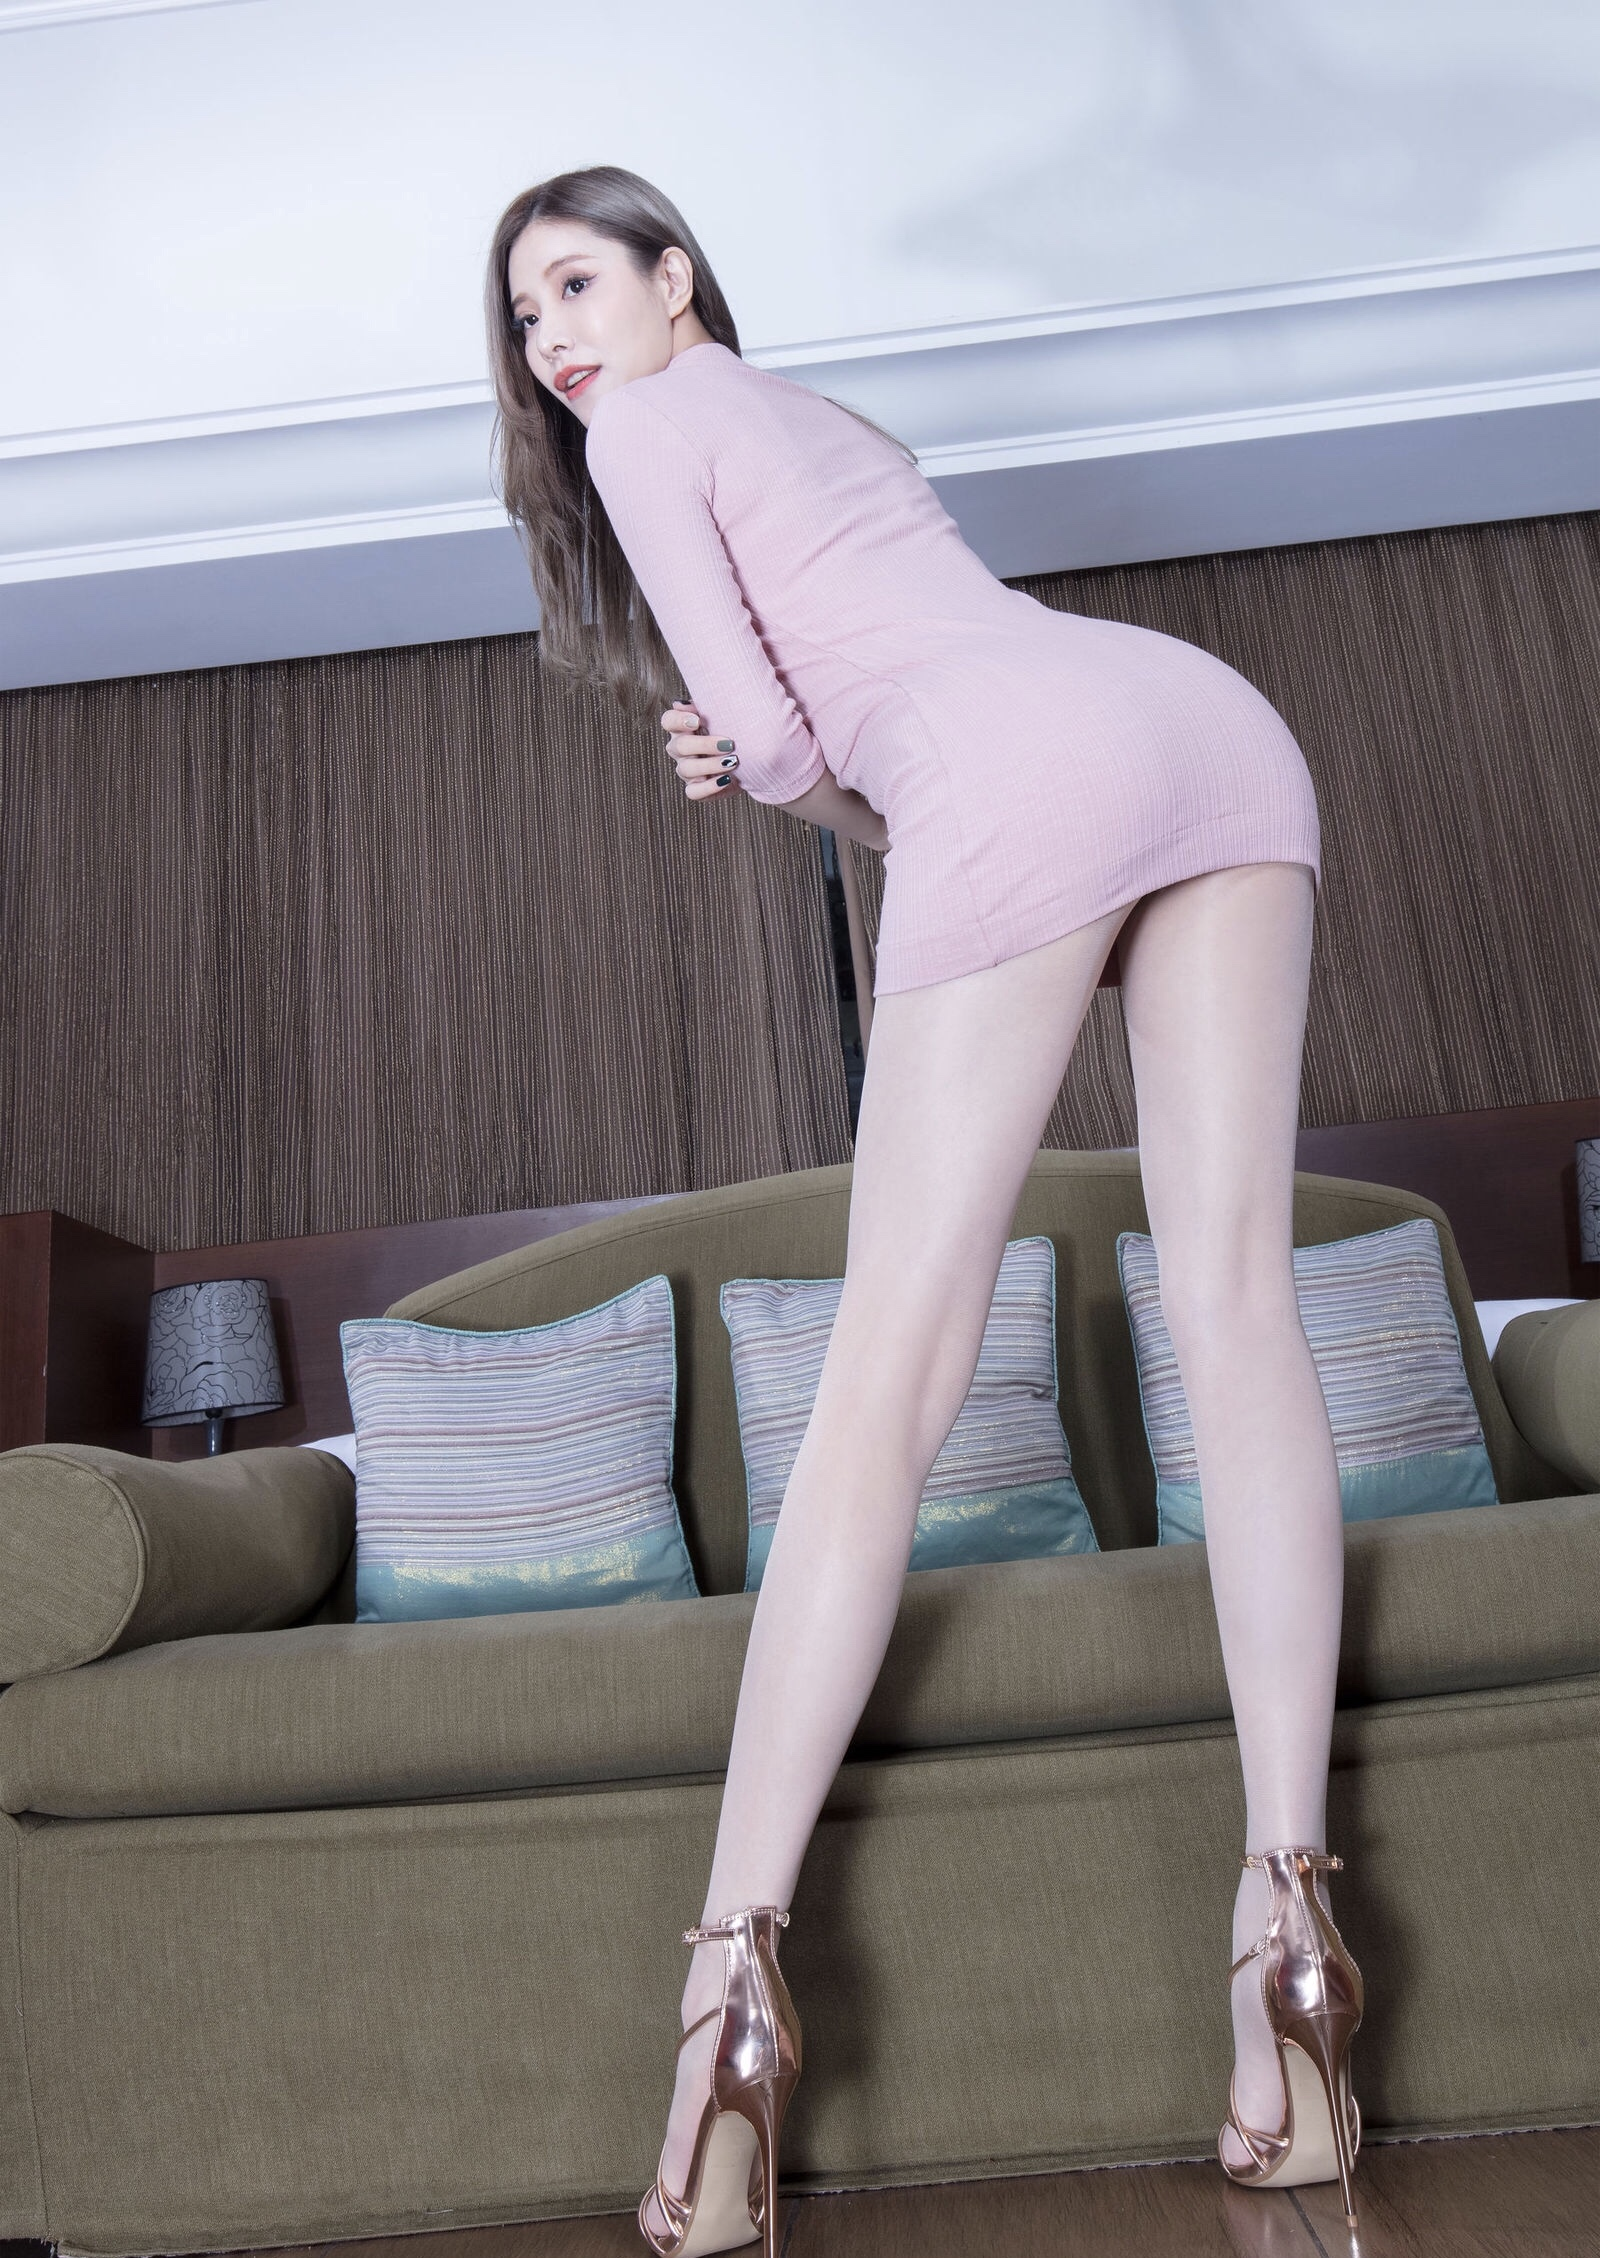 abby's beauty legs-2020 8